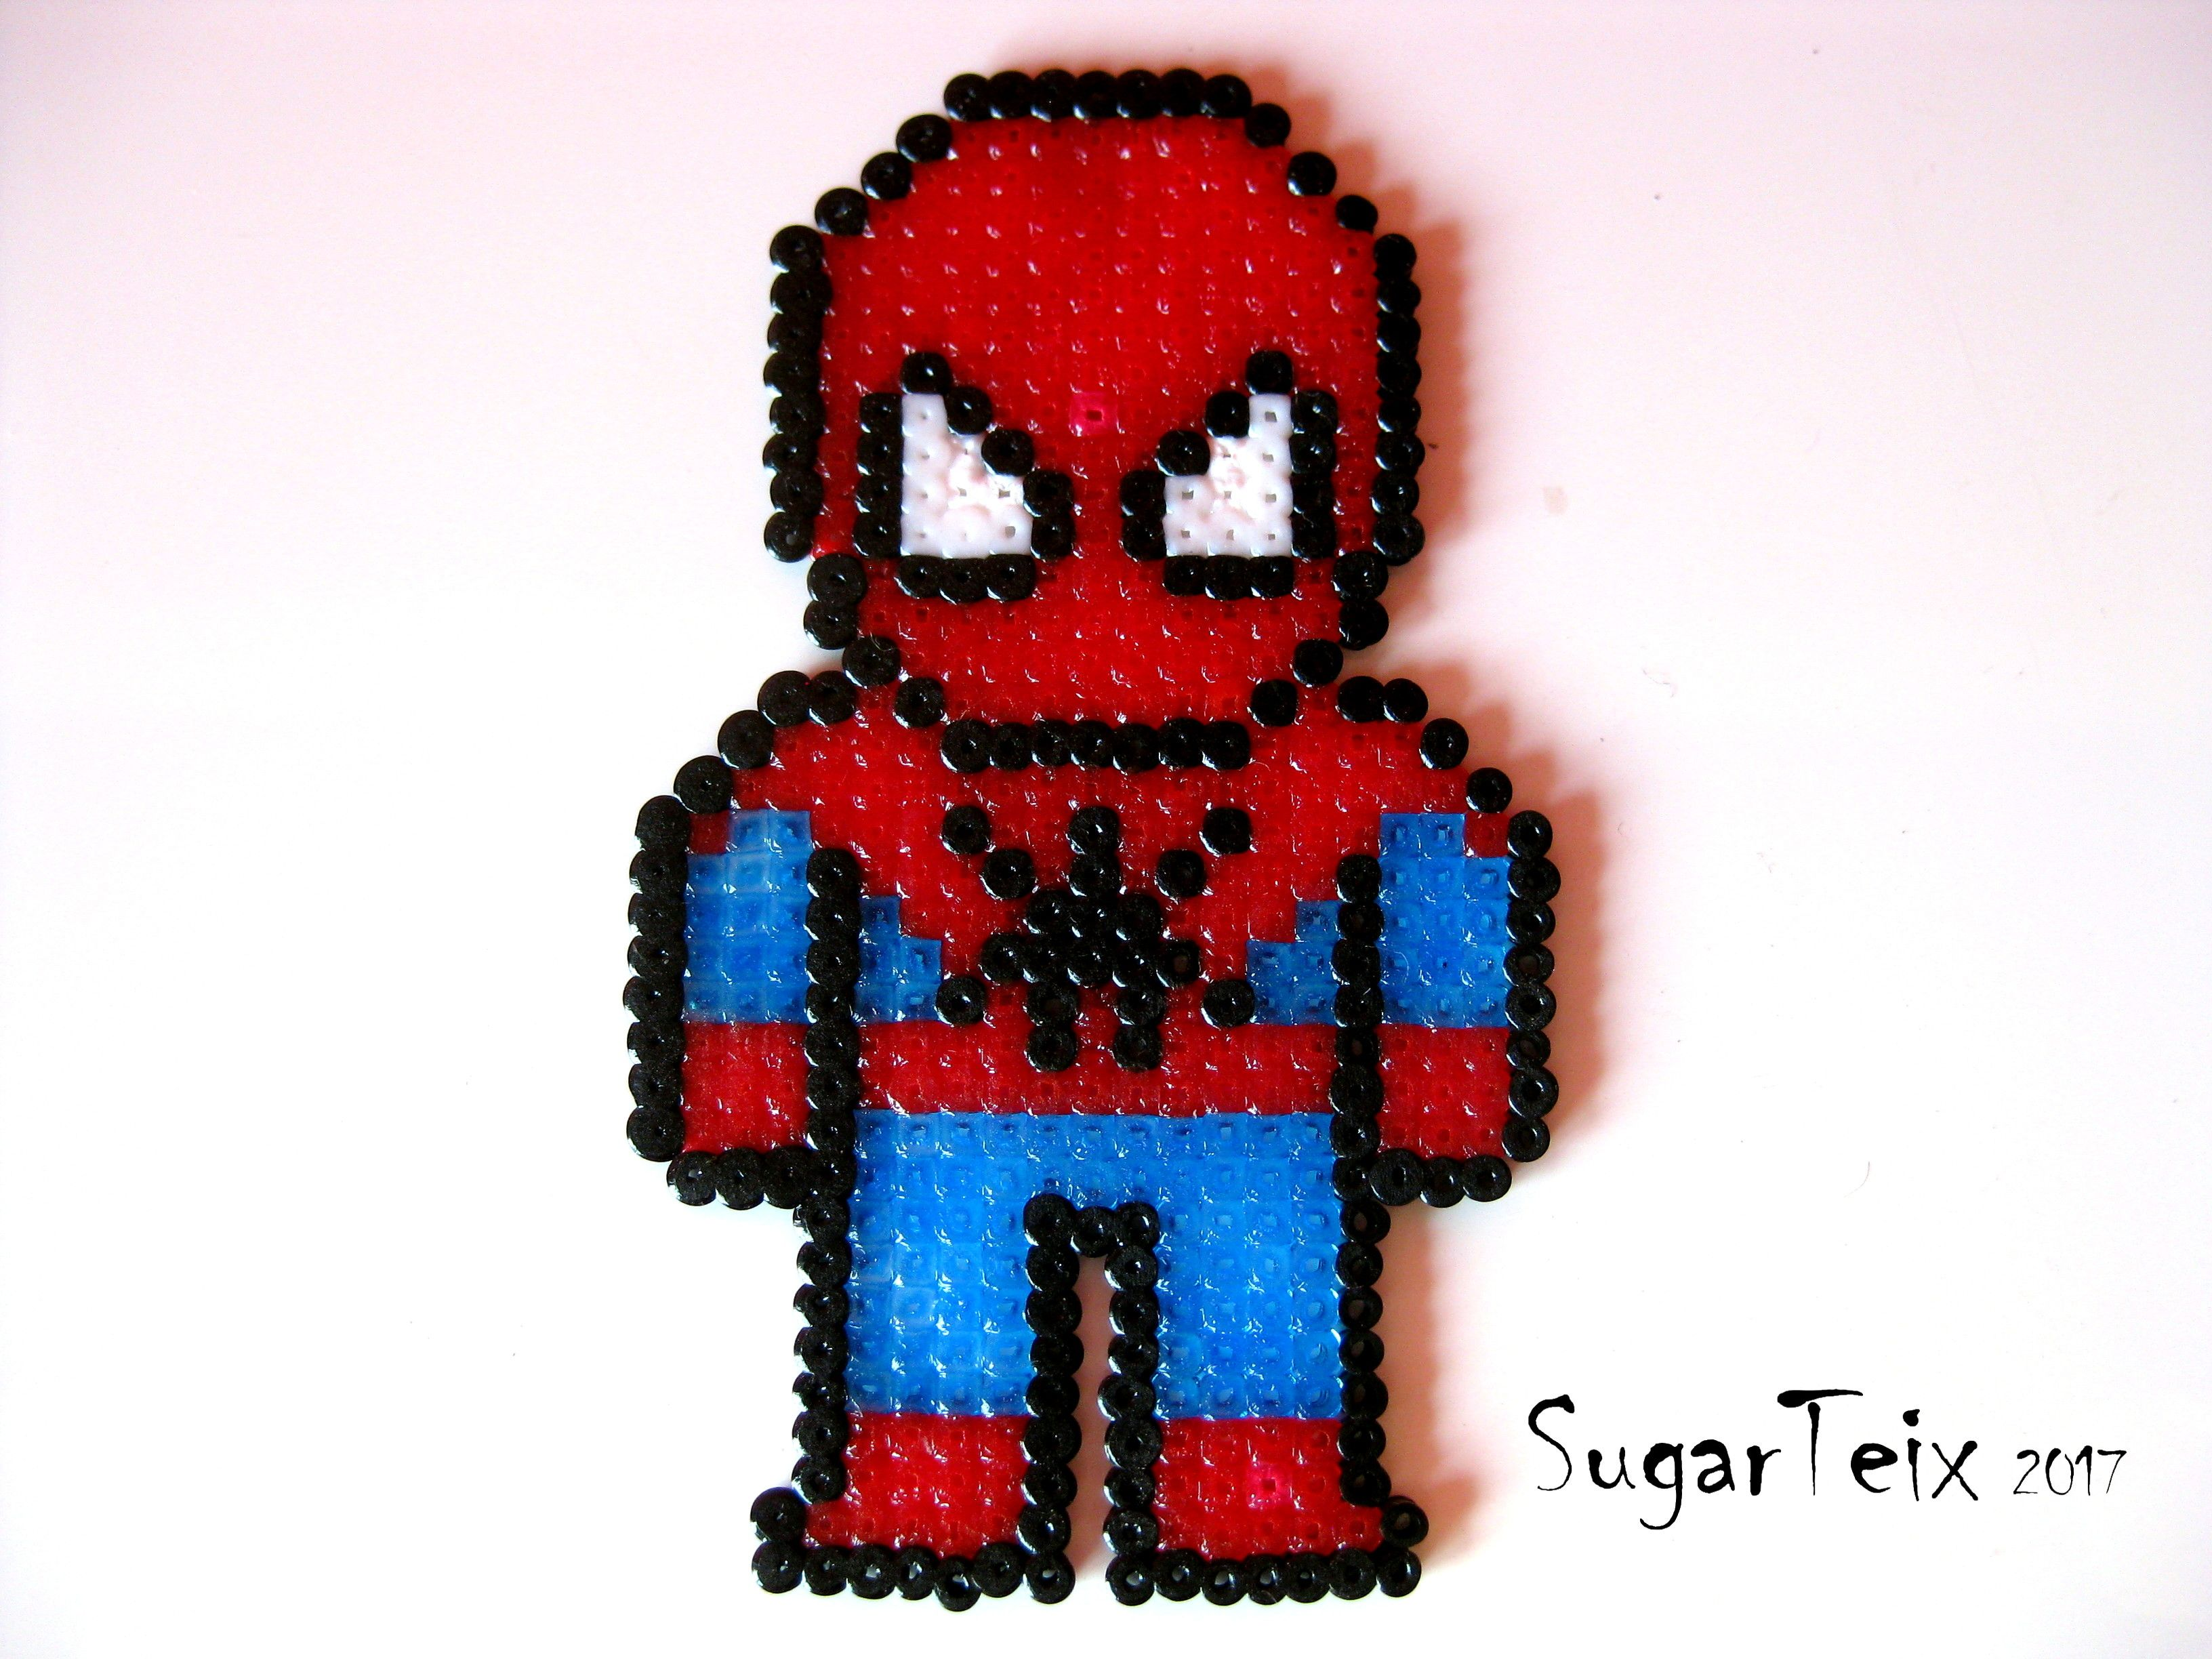 Hama Beads Spiderman: #spiderman #hombrearaña #hama #hamabeads #pyssla